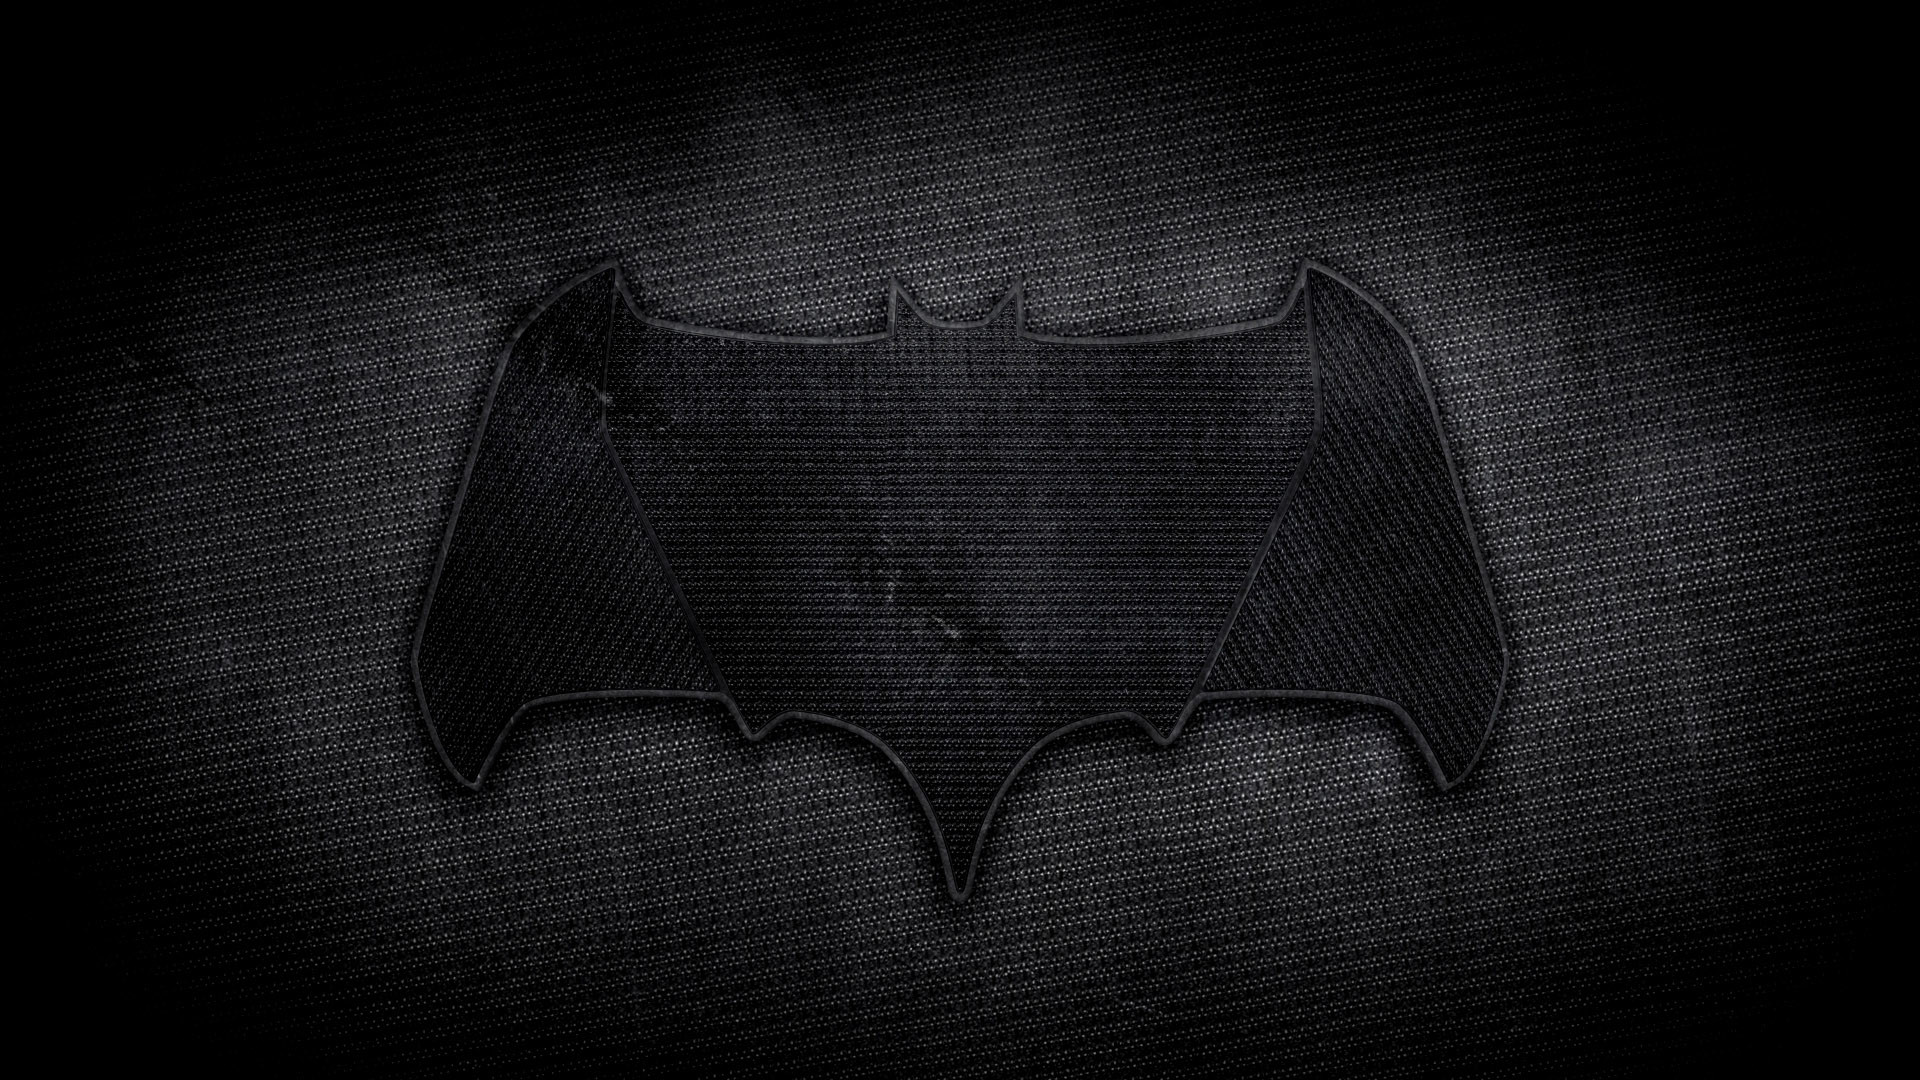 1920x1080 batman logo wallpaper-32